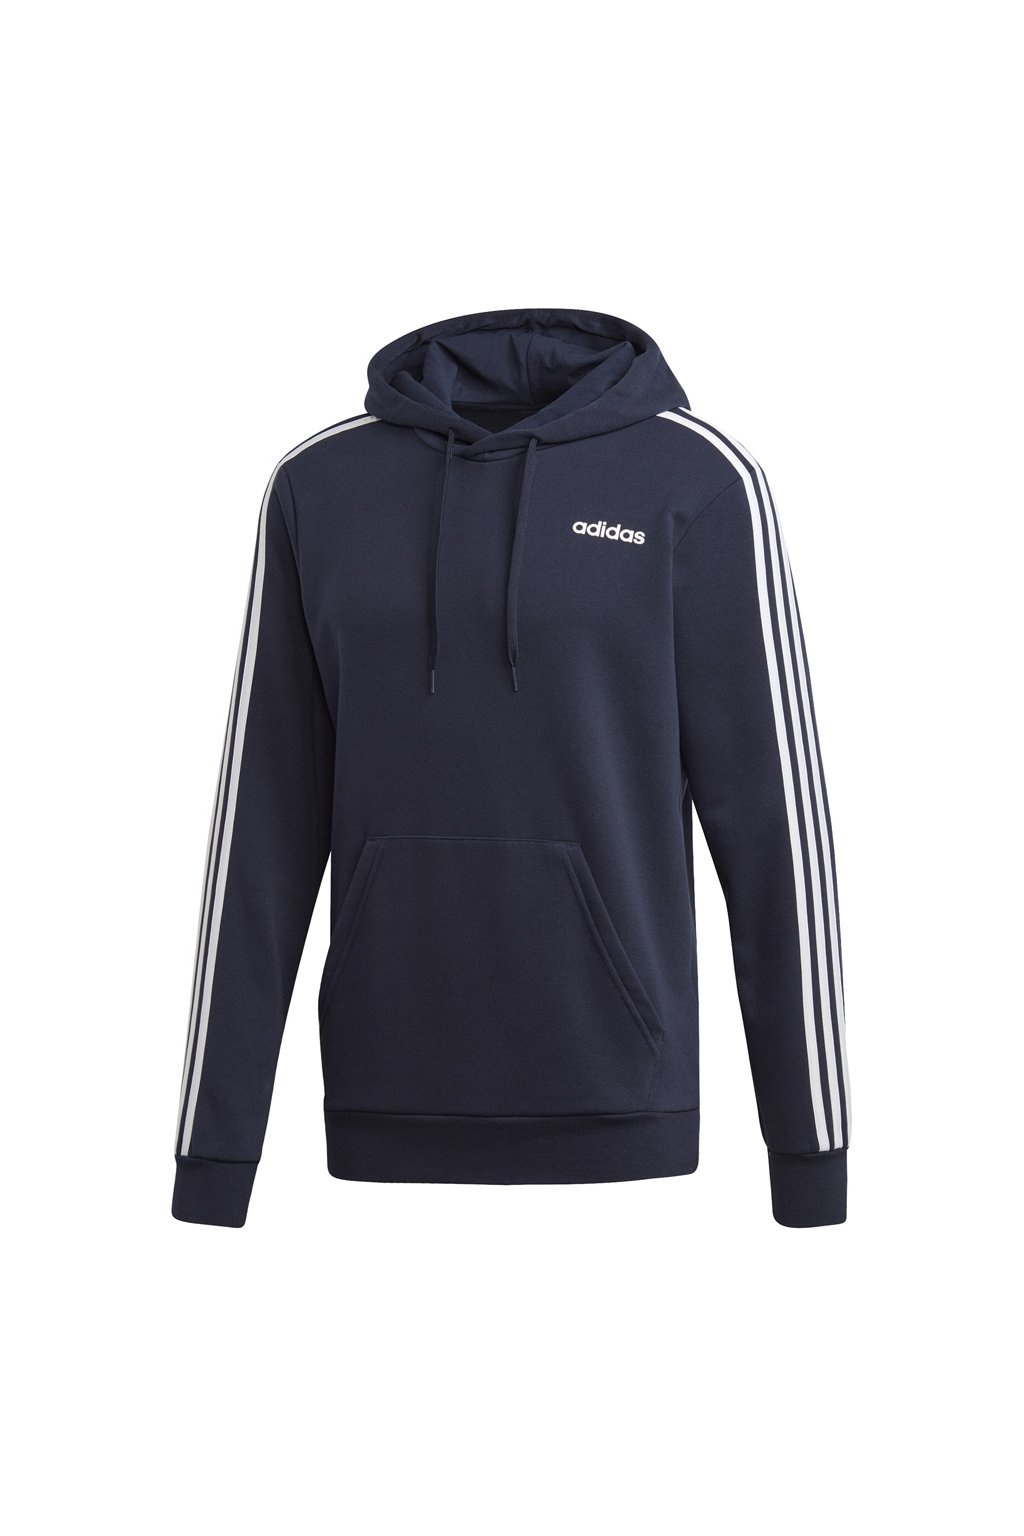 Pánska mikina Adidas Essentials 3 Stripes s kapucňou French Terry navy blue DU0499